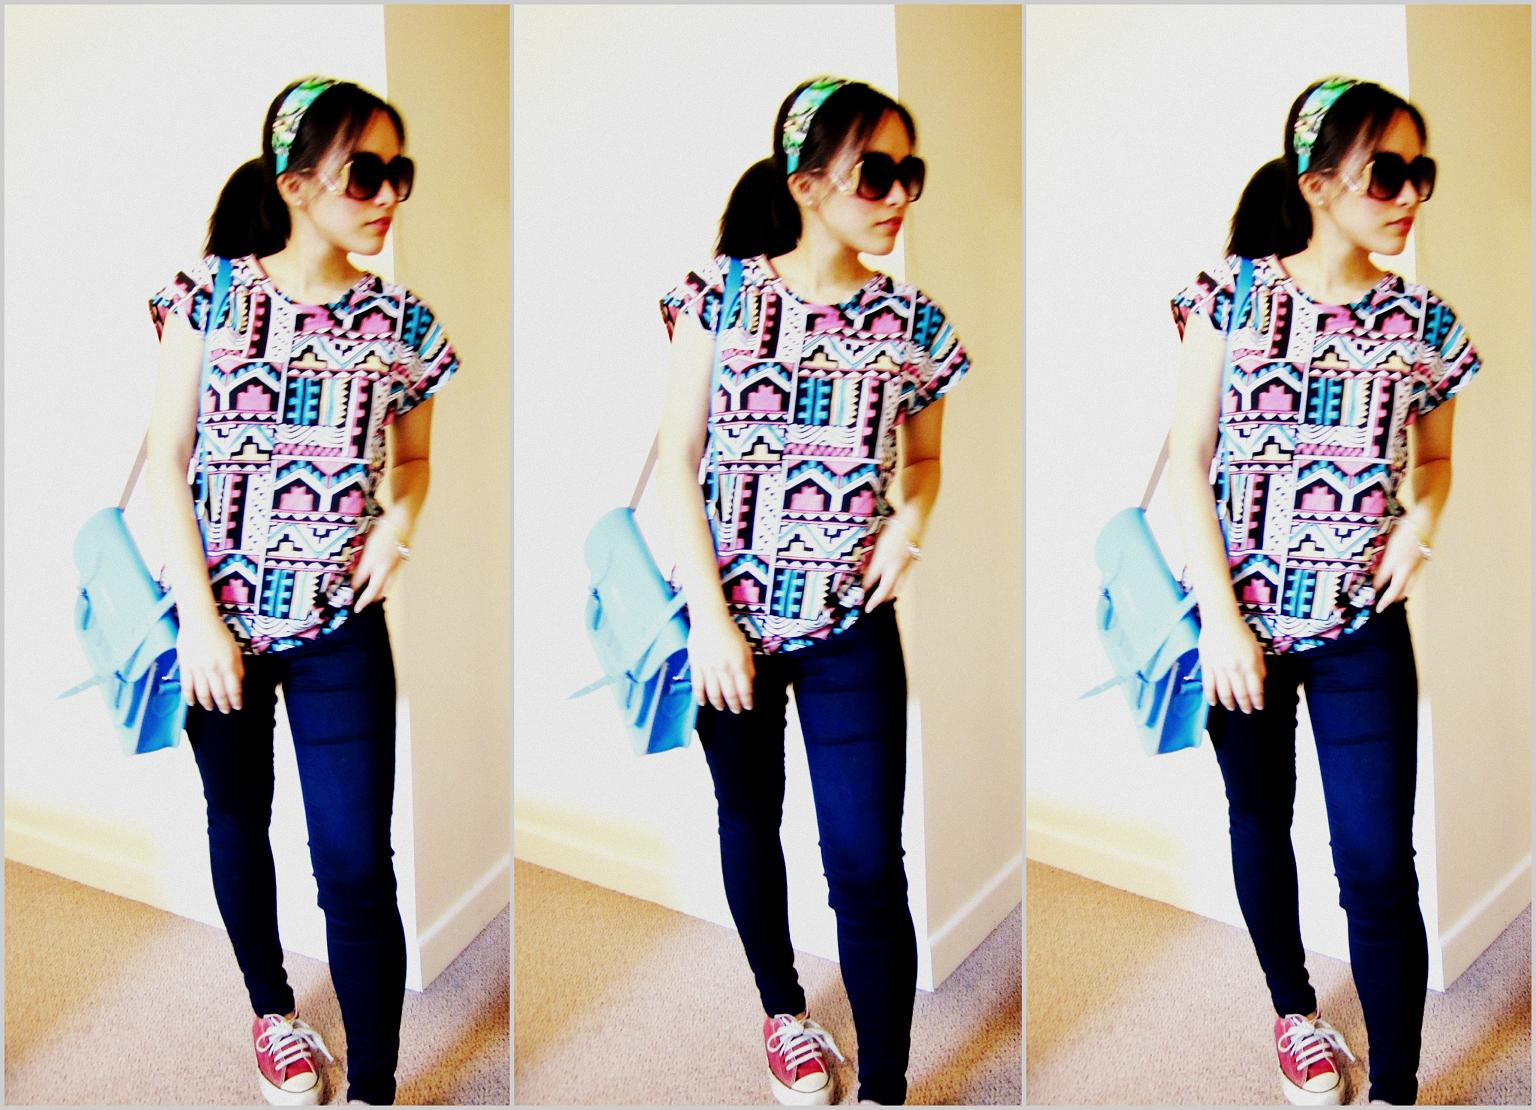 Aztec Print, Neon & Old Converse Shoes minty + ferskener  minty+peaches